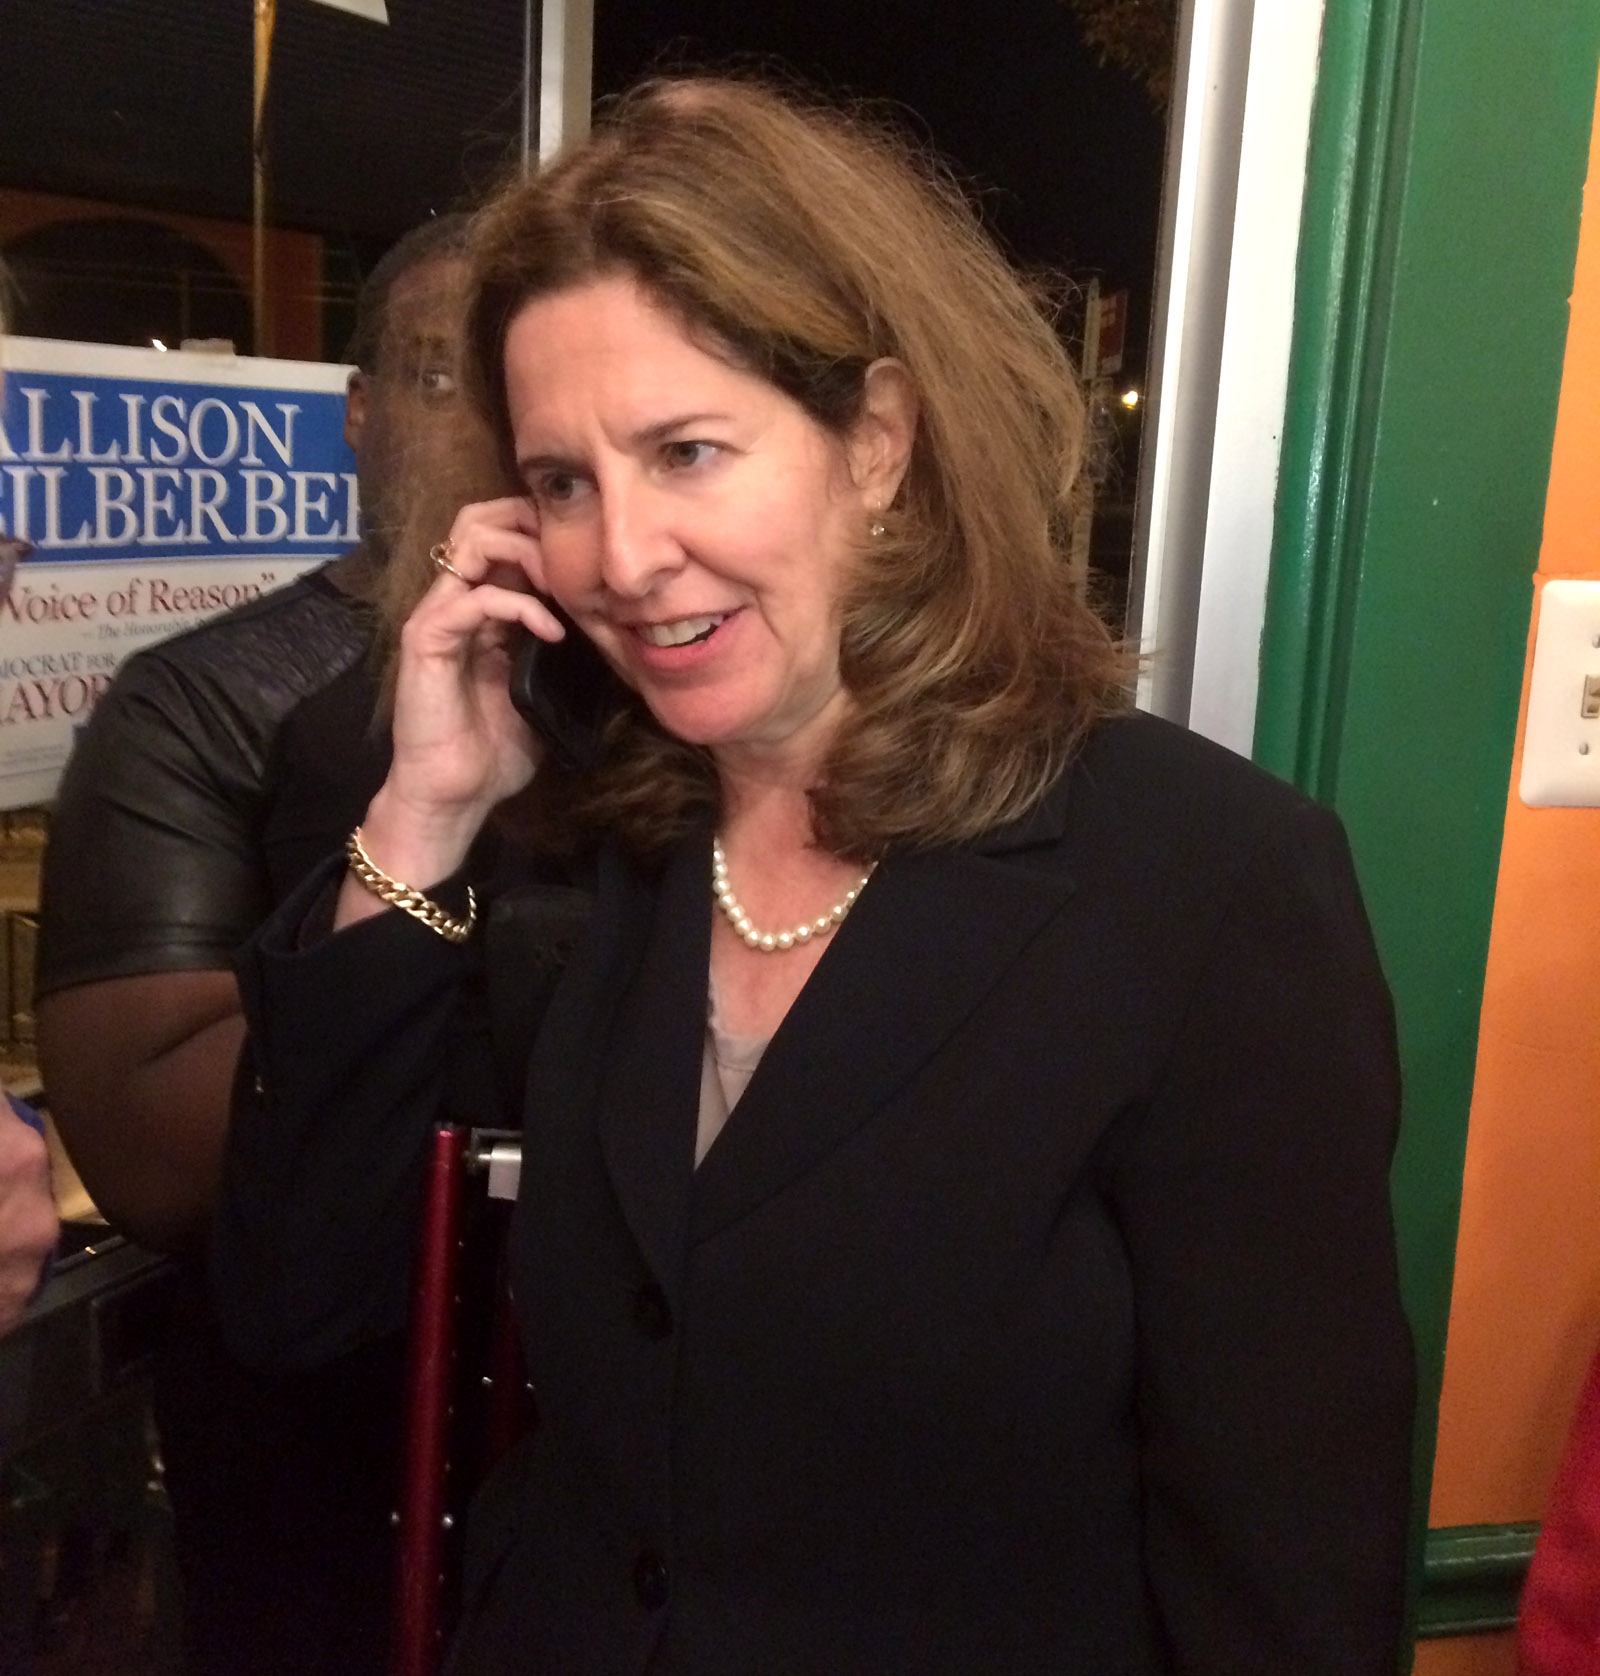 Alexandria Mayor-elect Allison Silberberg talks on the phone during her election night celebration in Del Ray on Tuesday, Nov. 3, 2015. (WTOP/Dick Uliano)